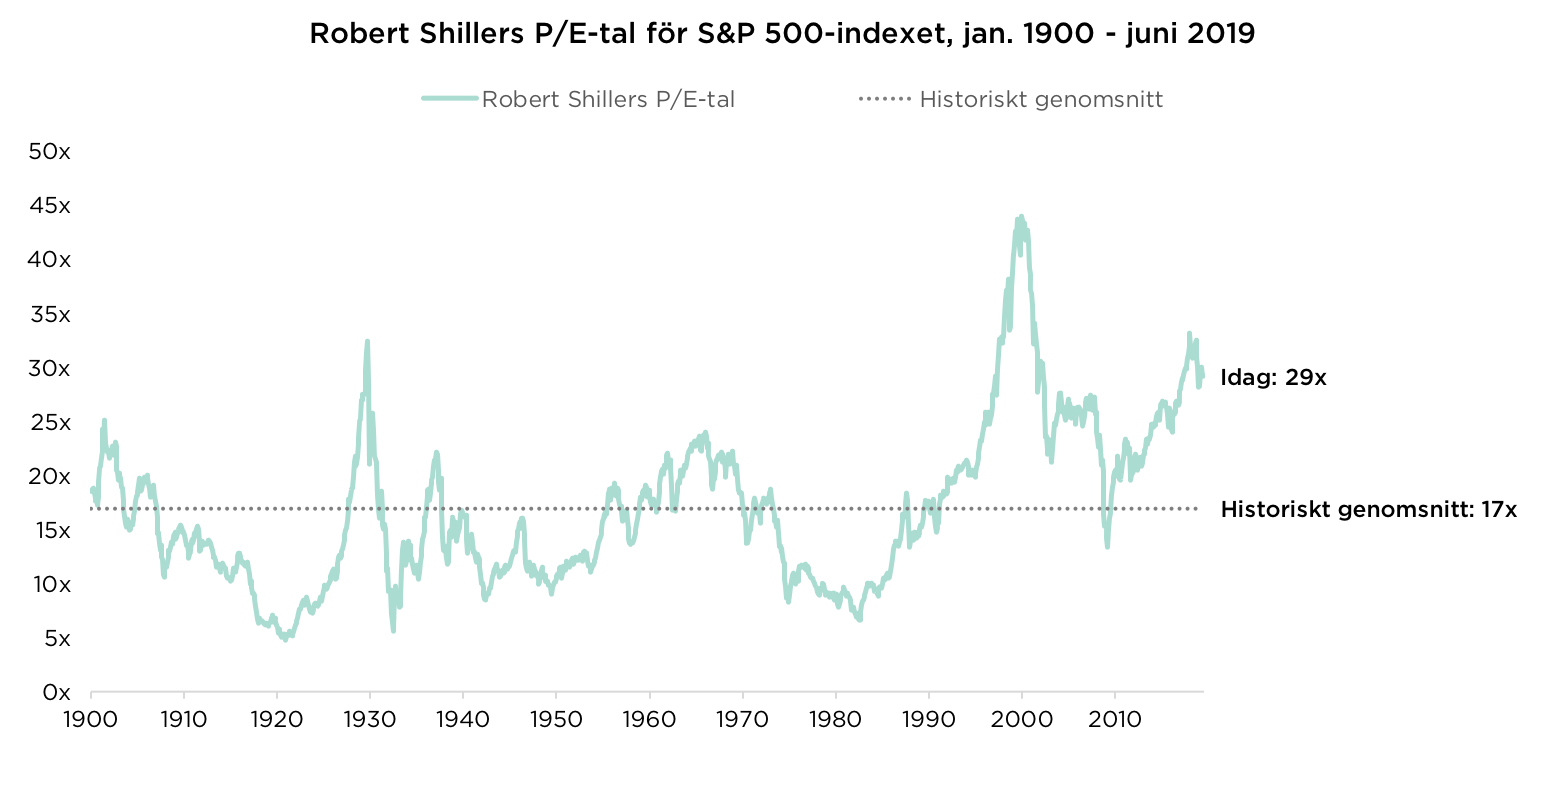 Robert Shillers P/E-tal för S&P 500-indexet, jan. 1900 – juni 2019